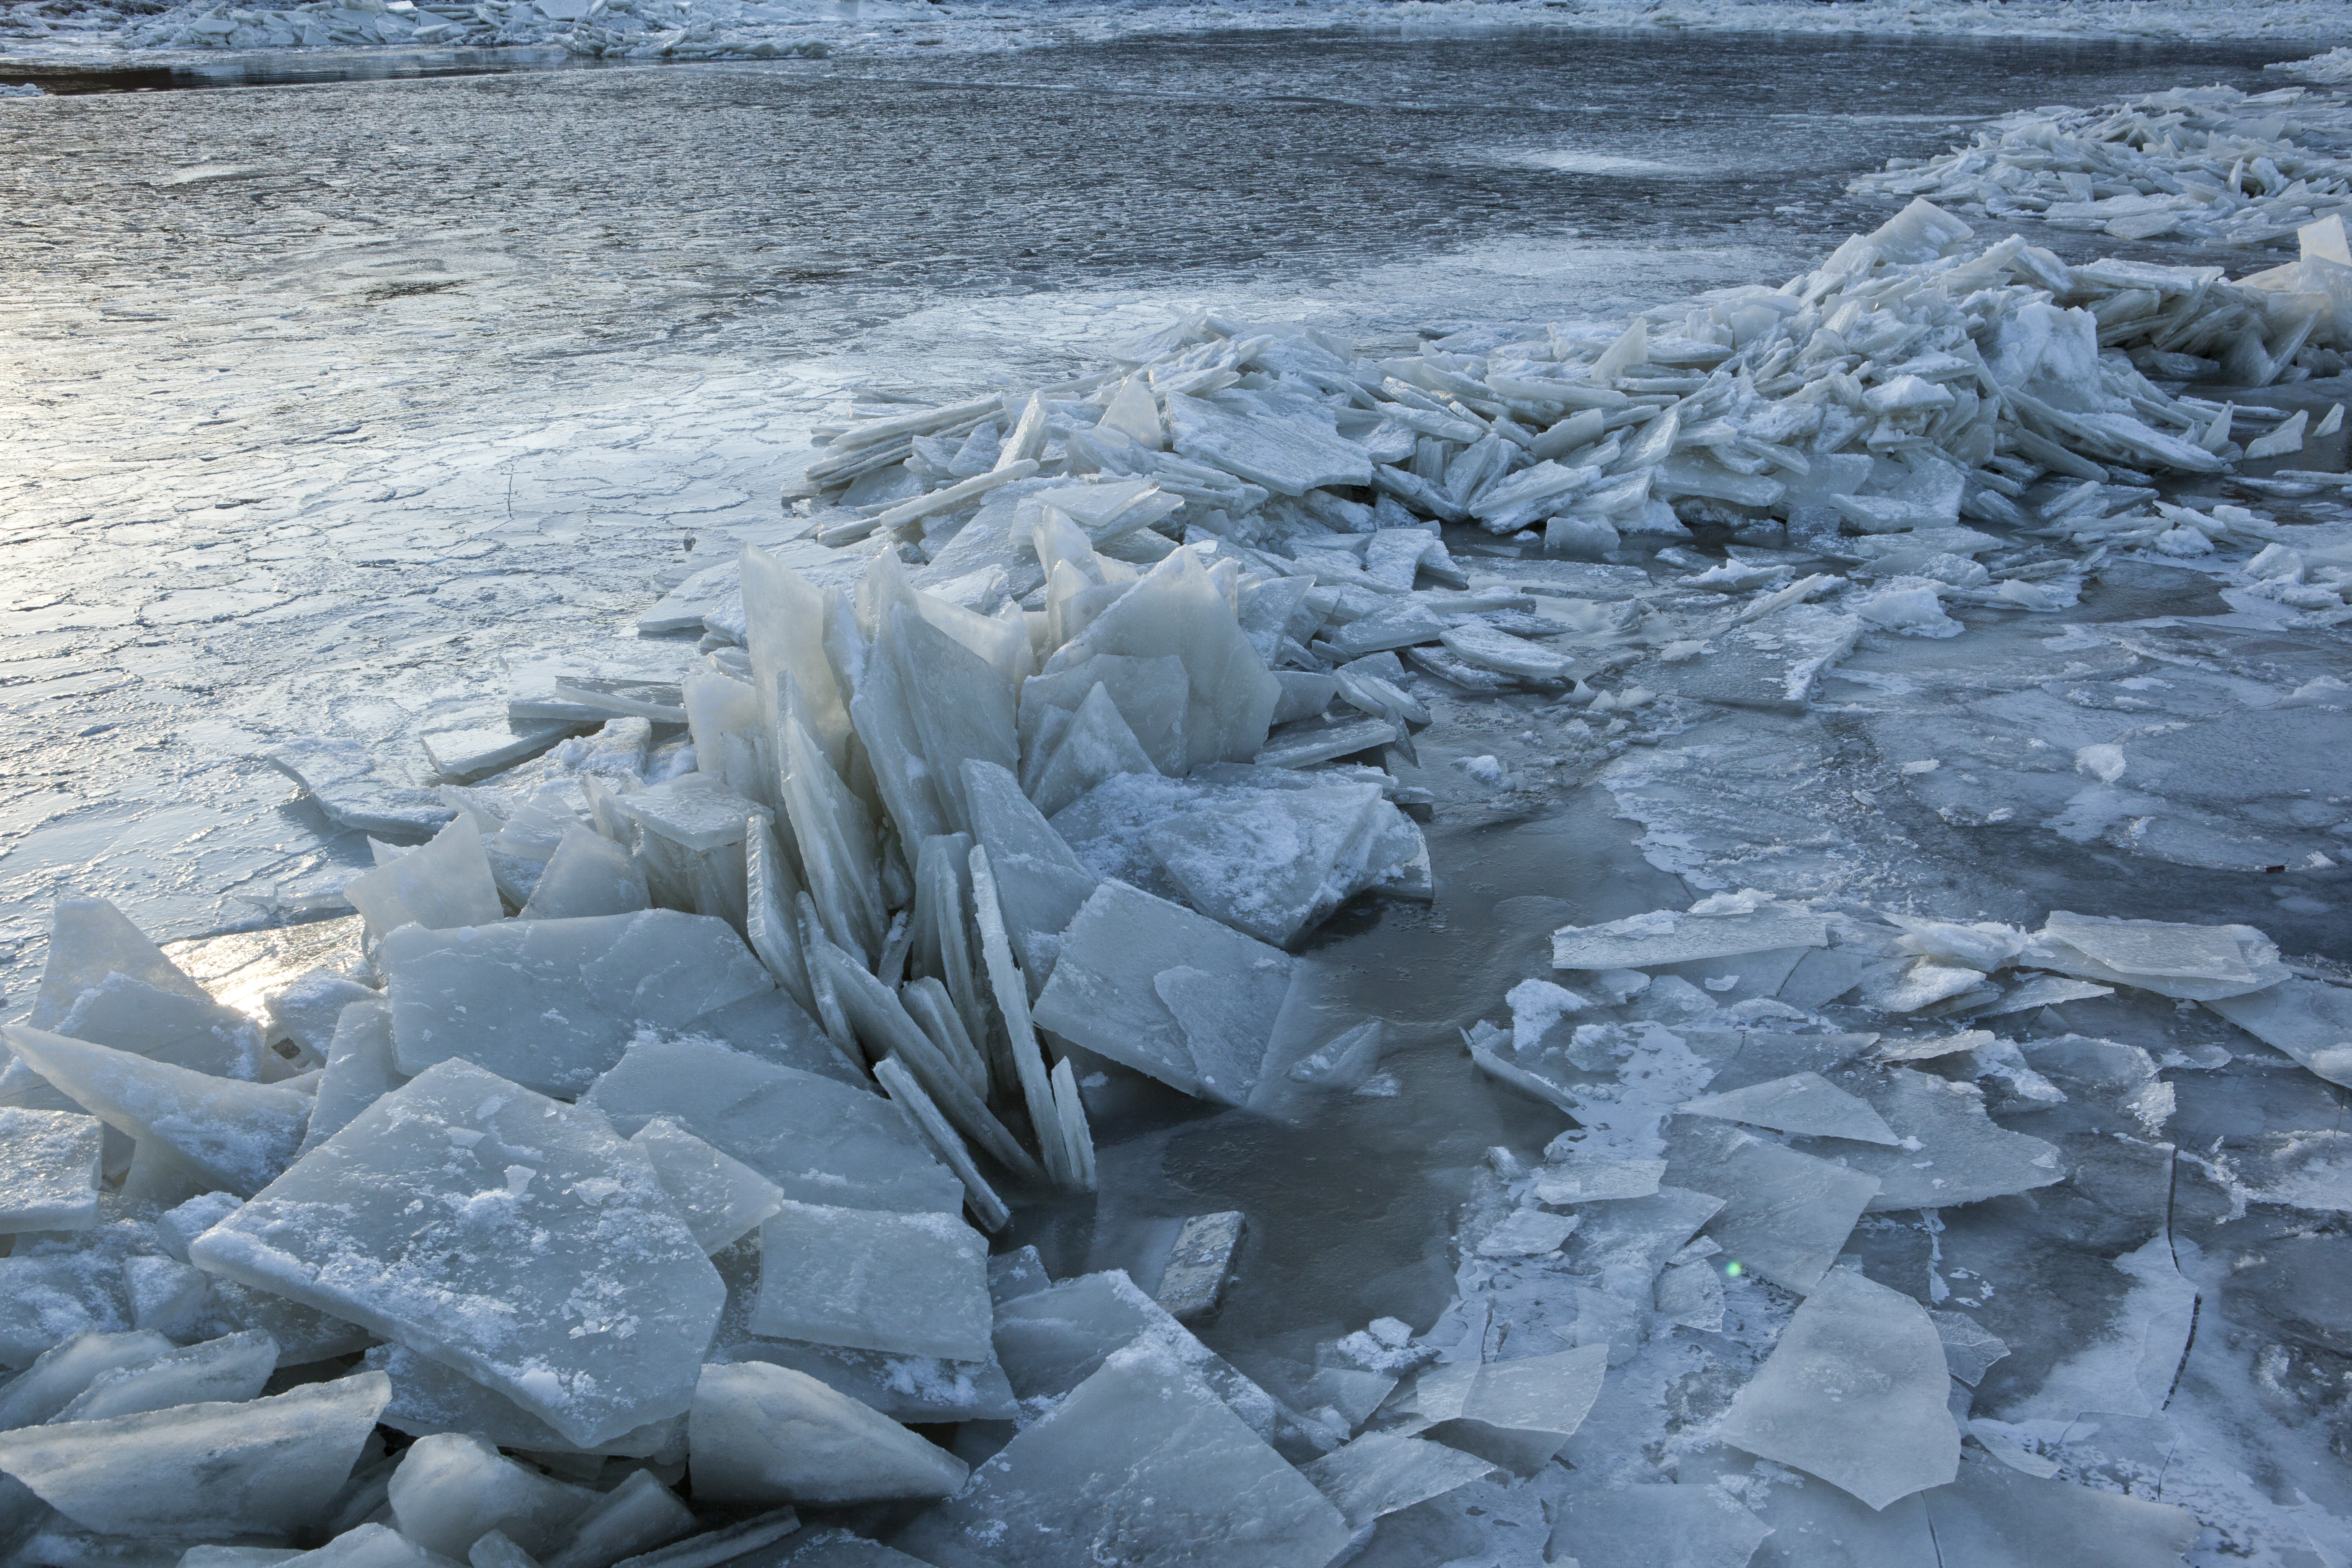 File:Breaking The Ice On The Hudson River With United States Coast ...